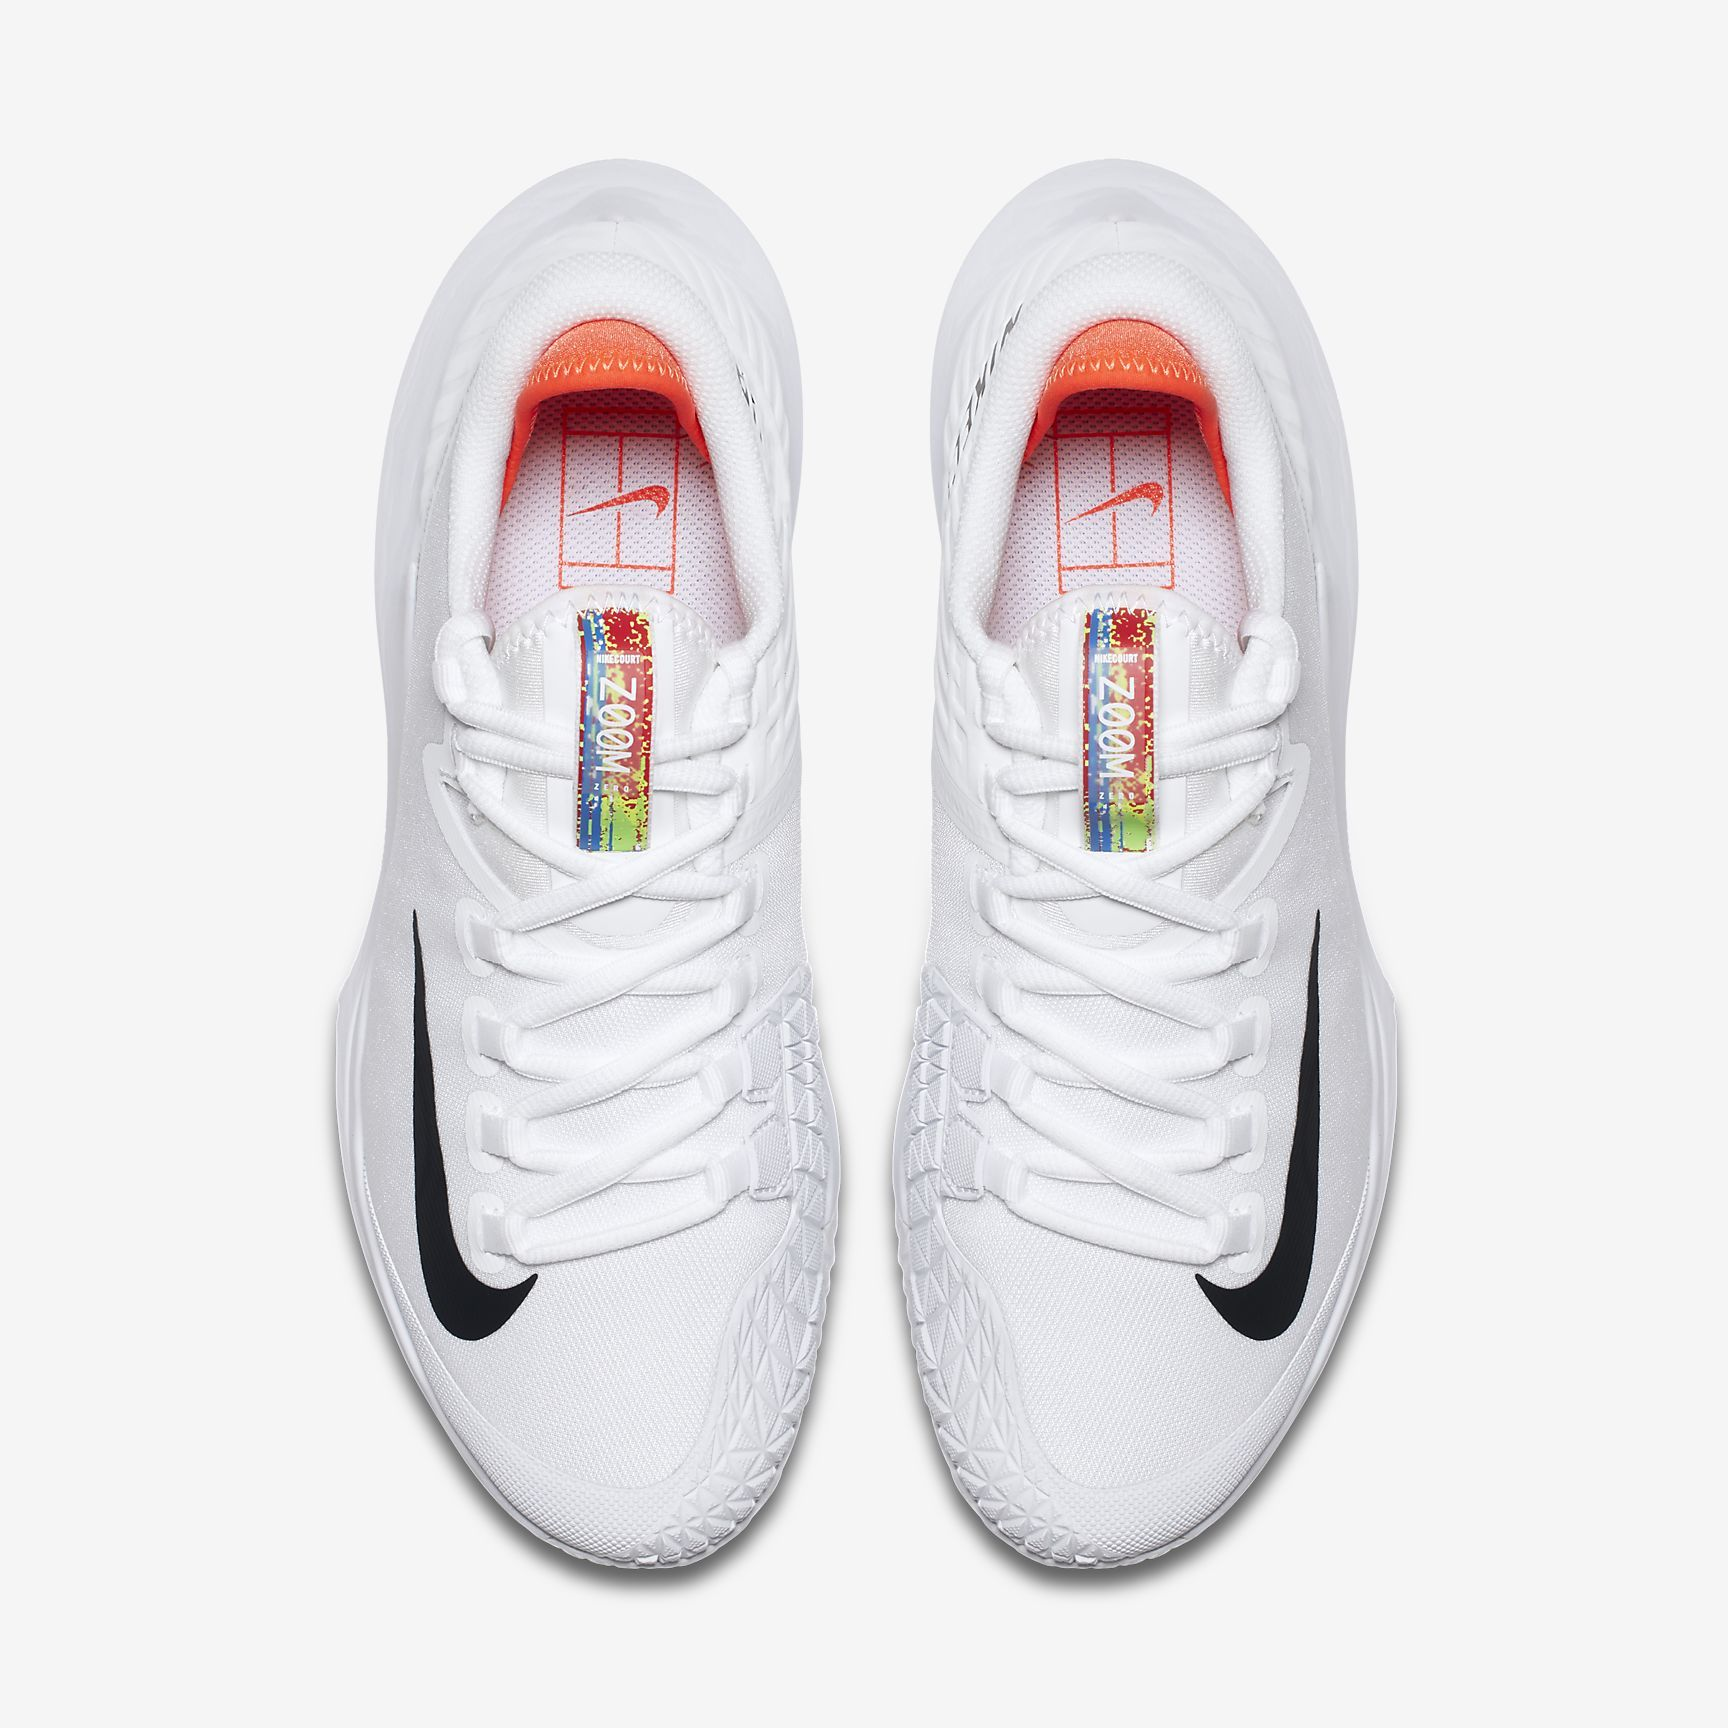 Nike Court Air Zoom Zero Women's Tennis Shoe Review